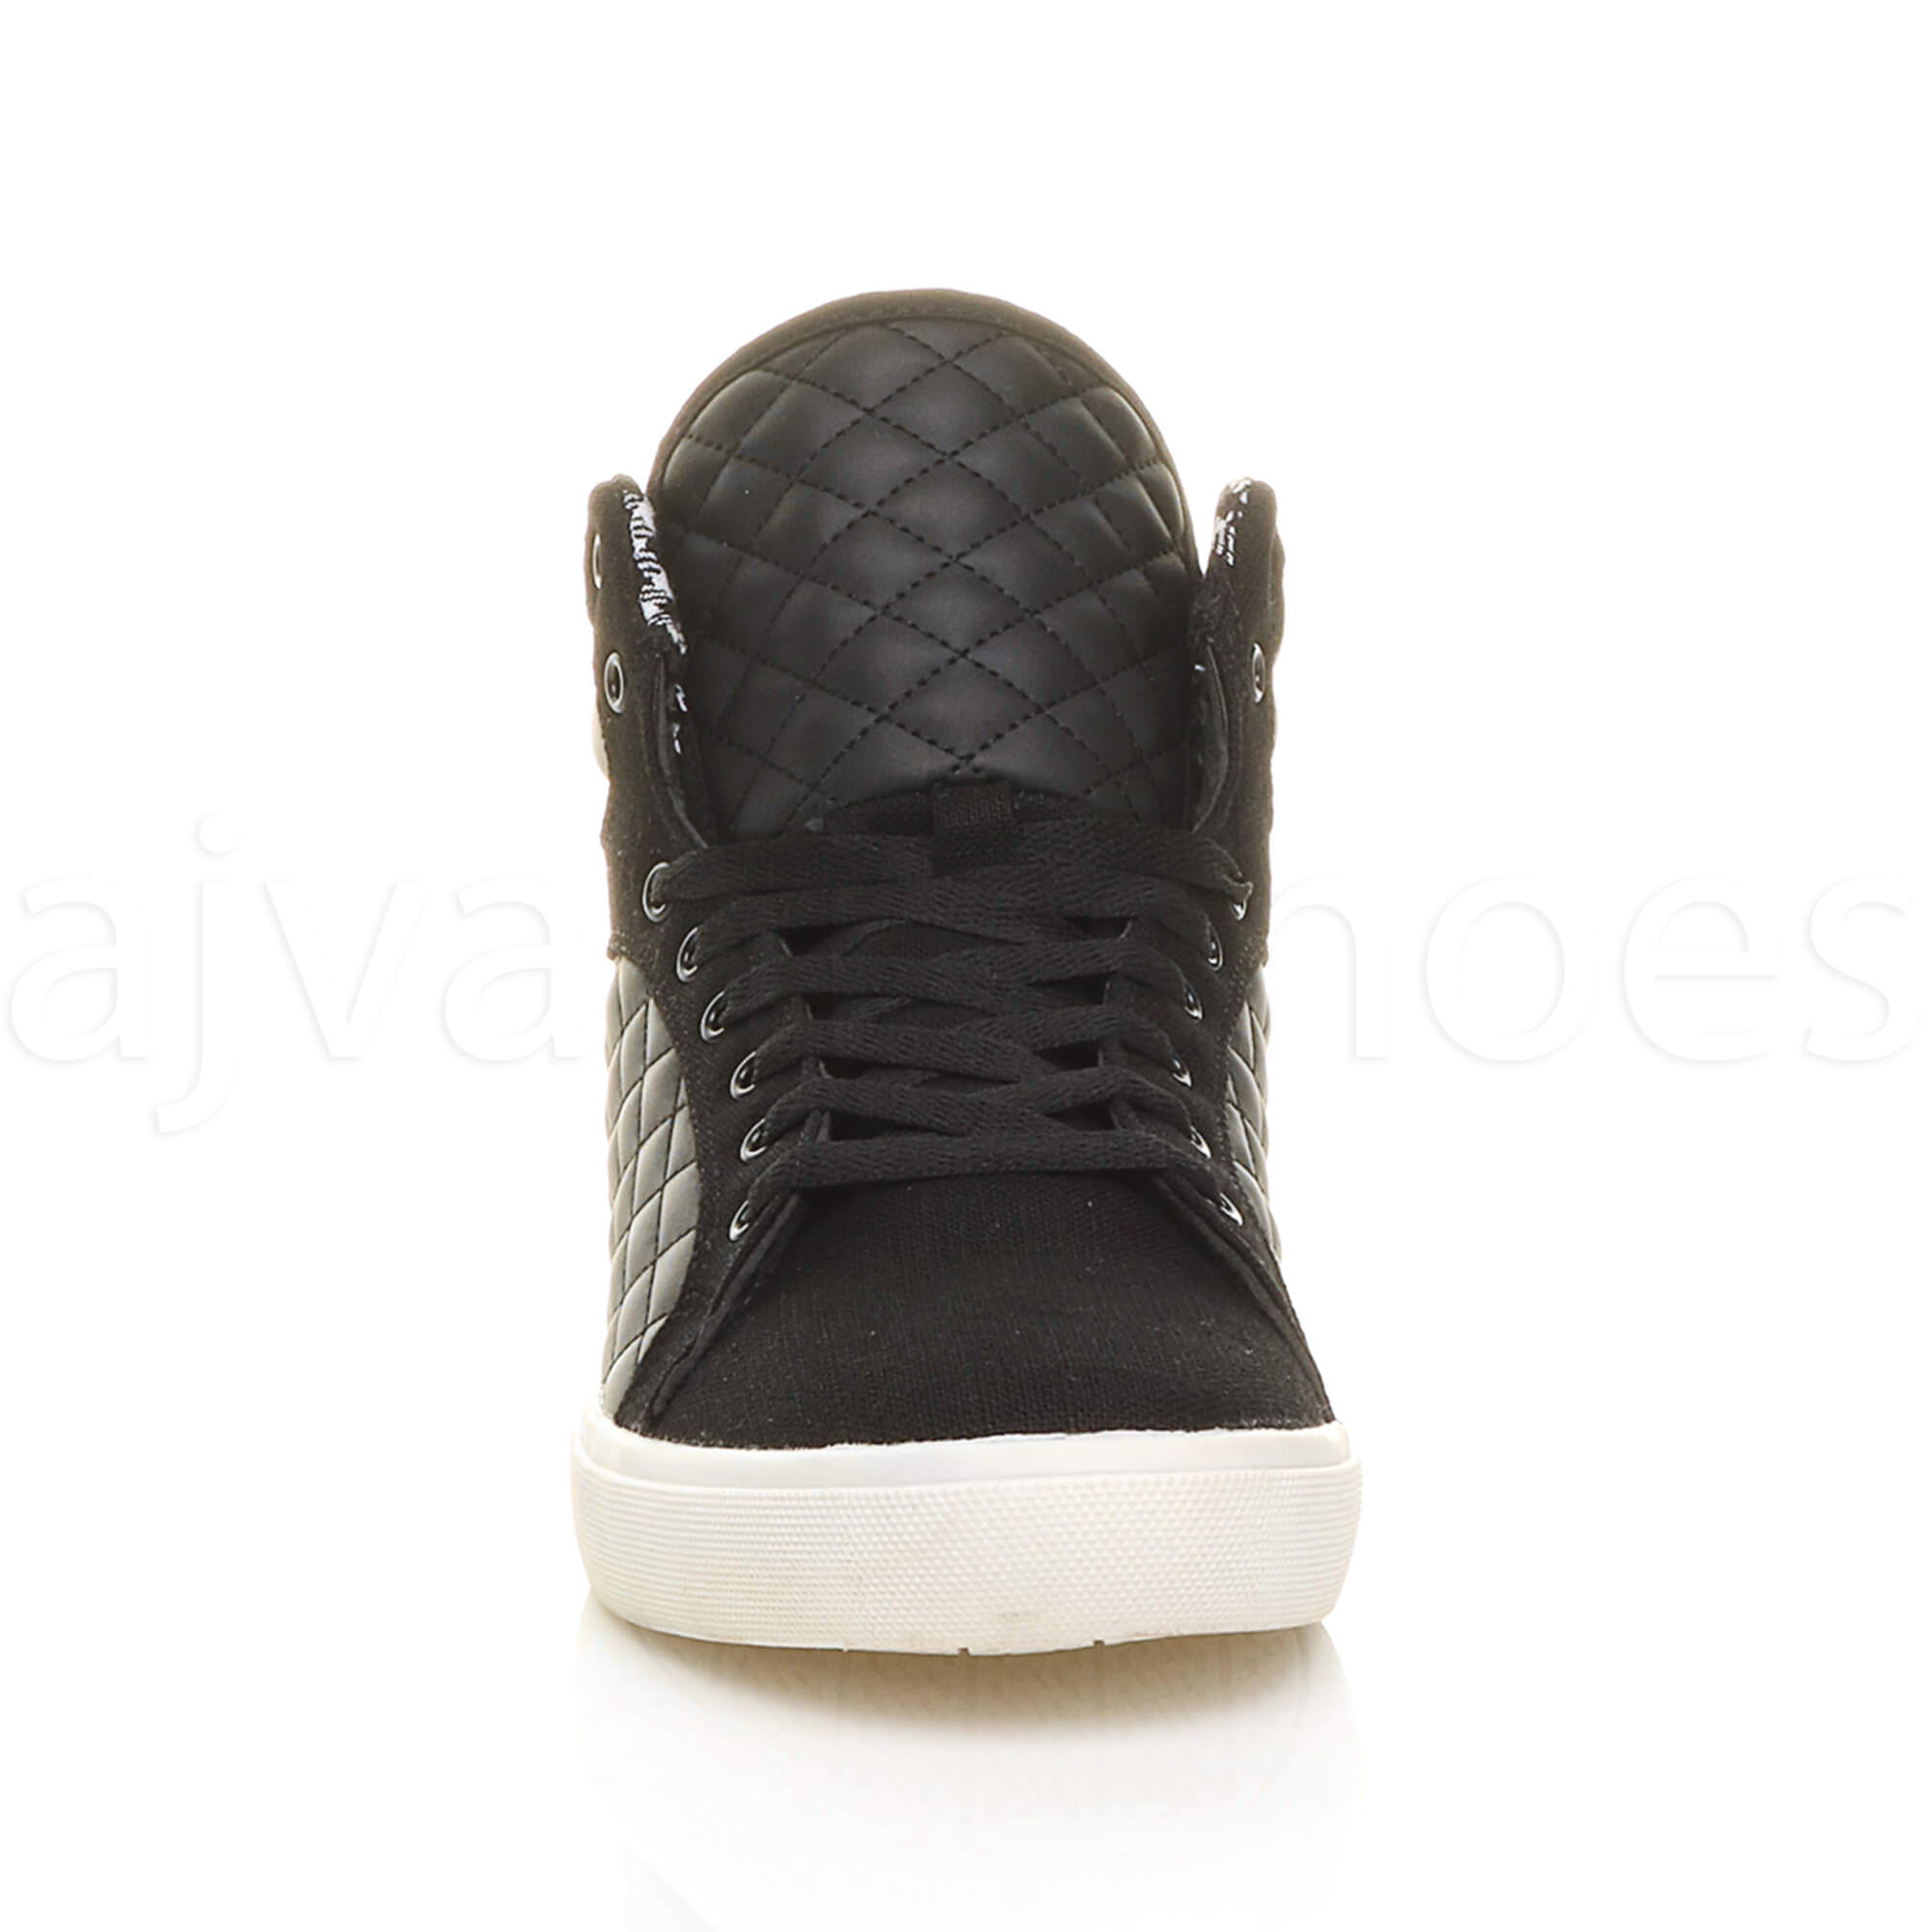 MENS-QUILTED-LACE-UP-FLAT-CASUAL-HI-HIGH-TOP-TRAINERS-SHOES-ANKLE-BOOTS-SIZE thumbnail 7